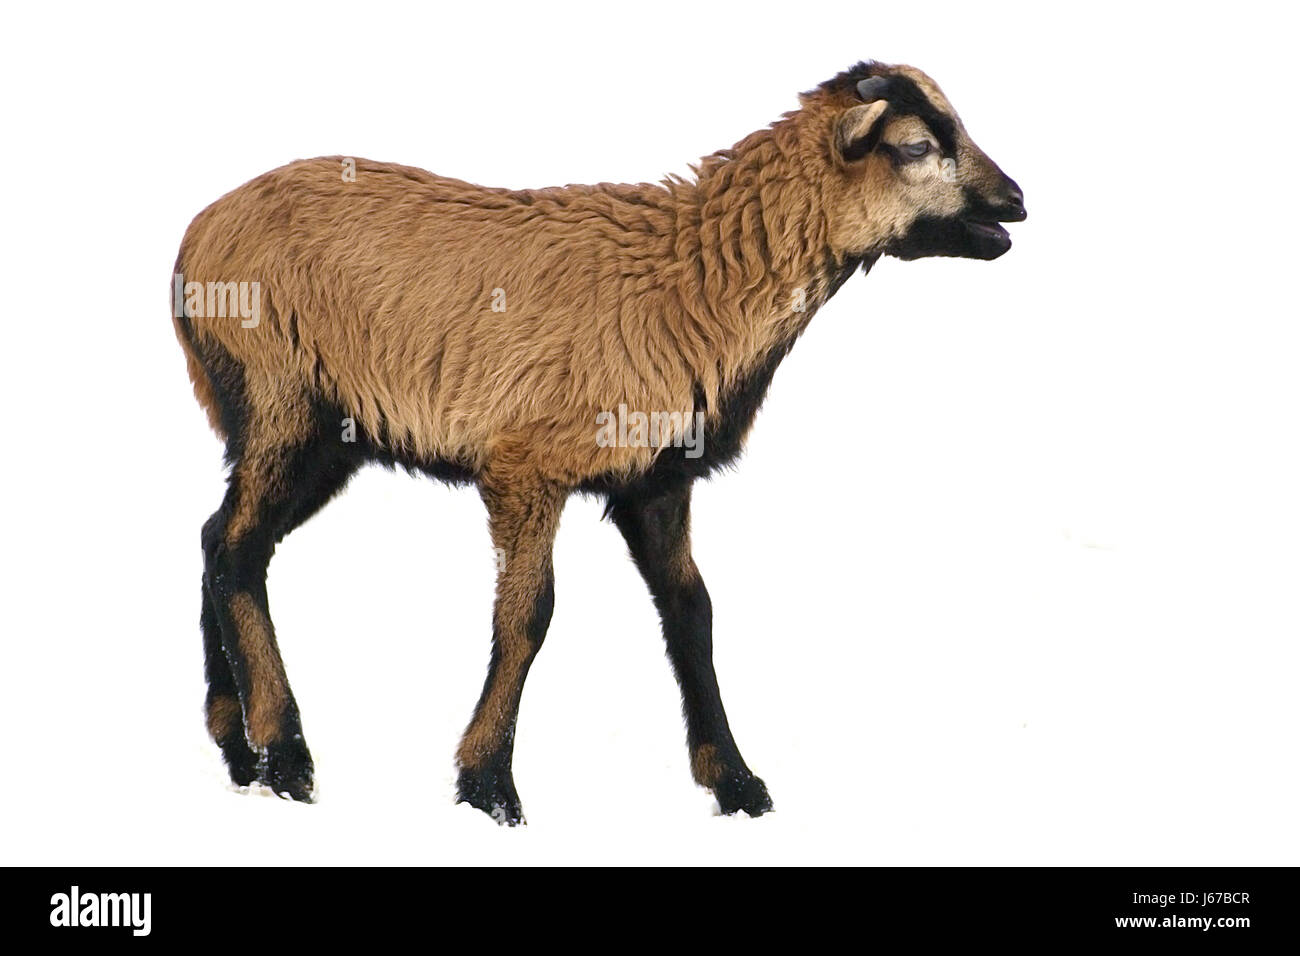 winter sheep lame cameroon isolated brown brownish brunette black swarthy - Stock Image